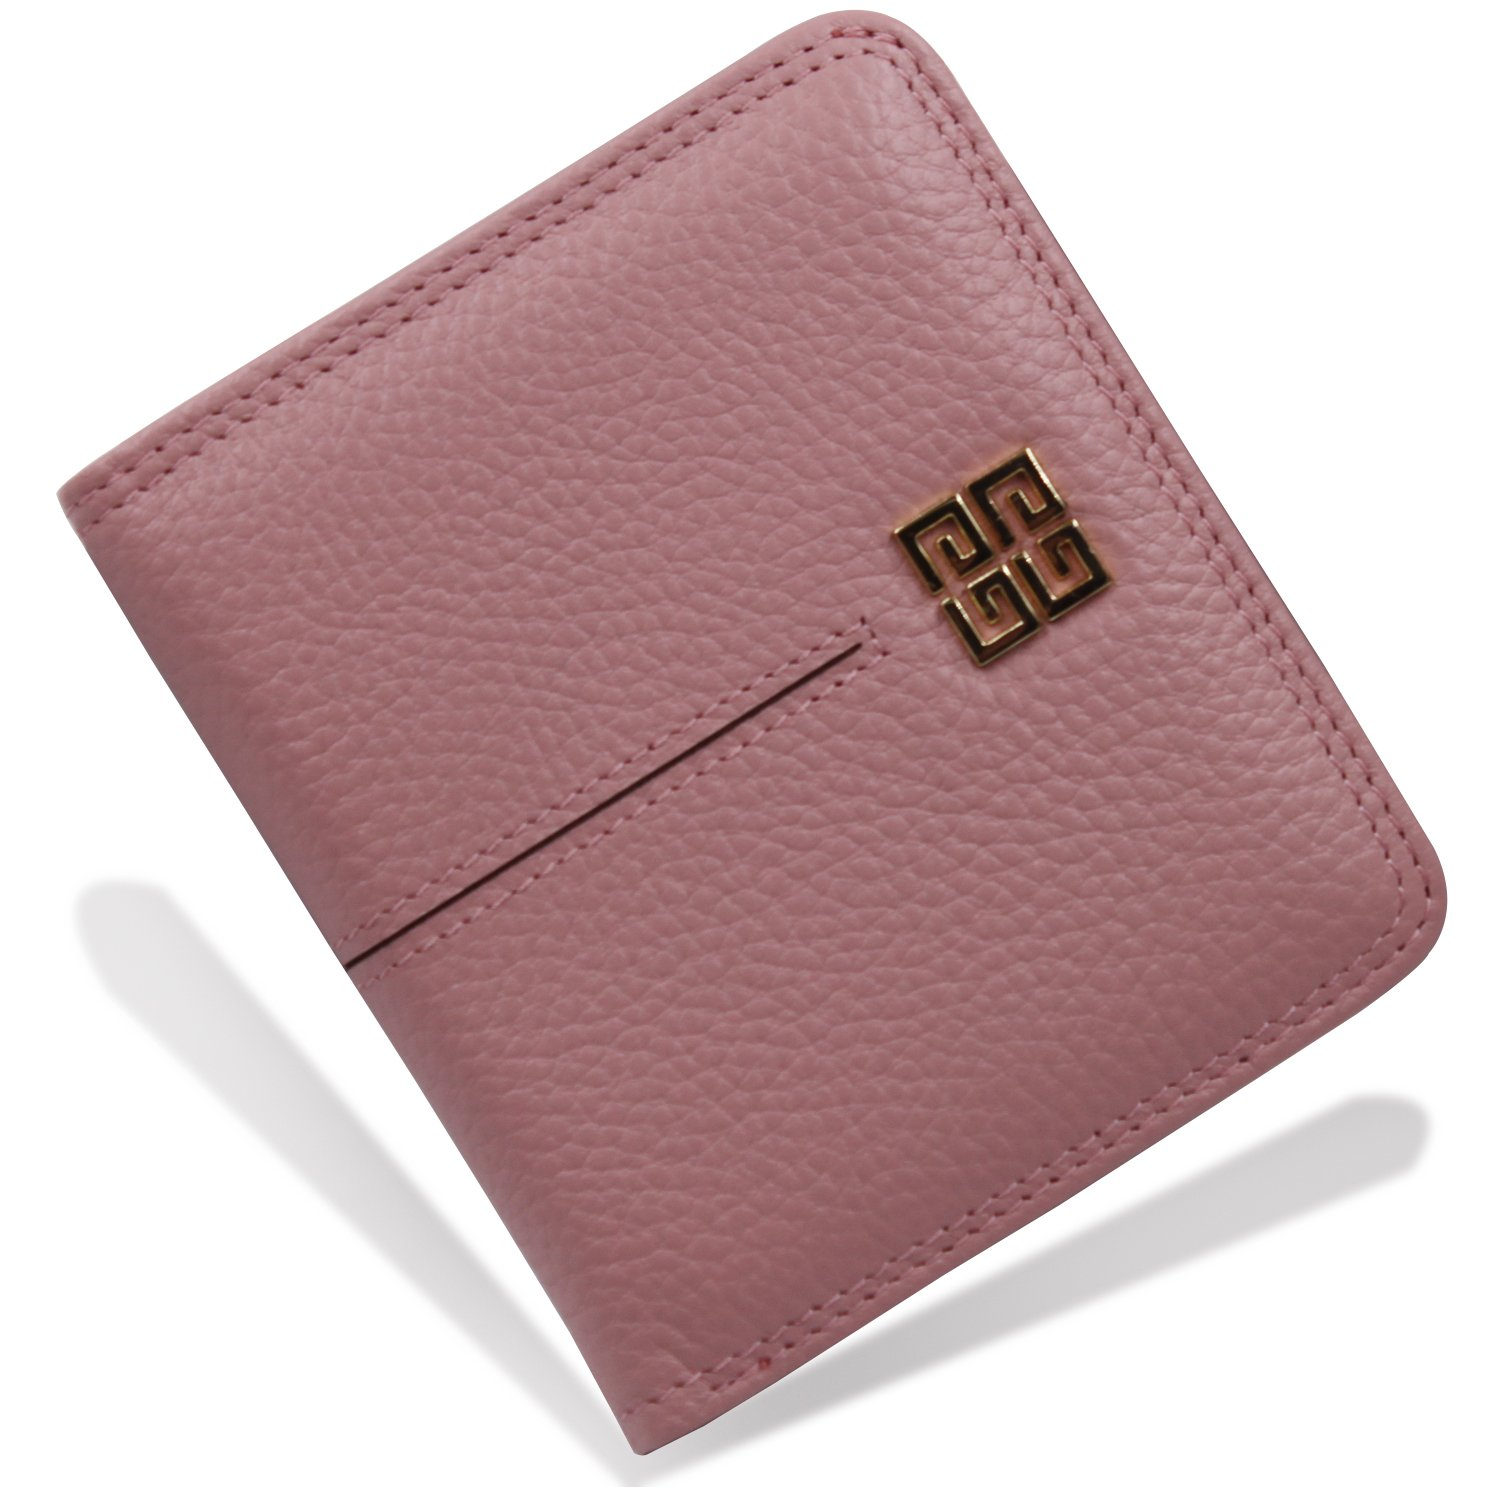 Women's Small Compact Bi-fold Leather Pocket Wallet Credit Card Holder Case with ID Card Window (New Pink)